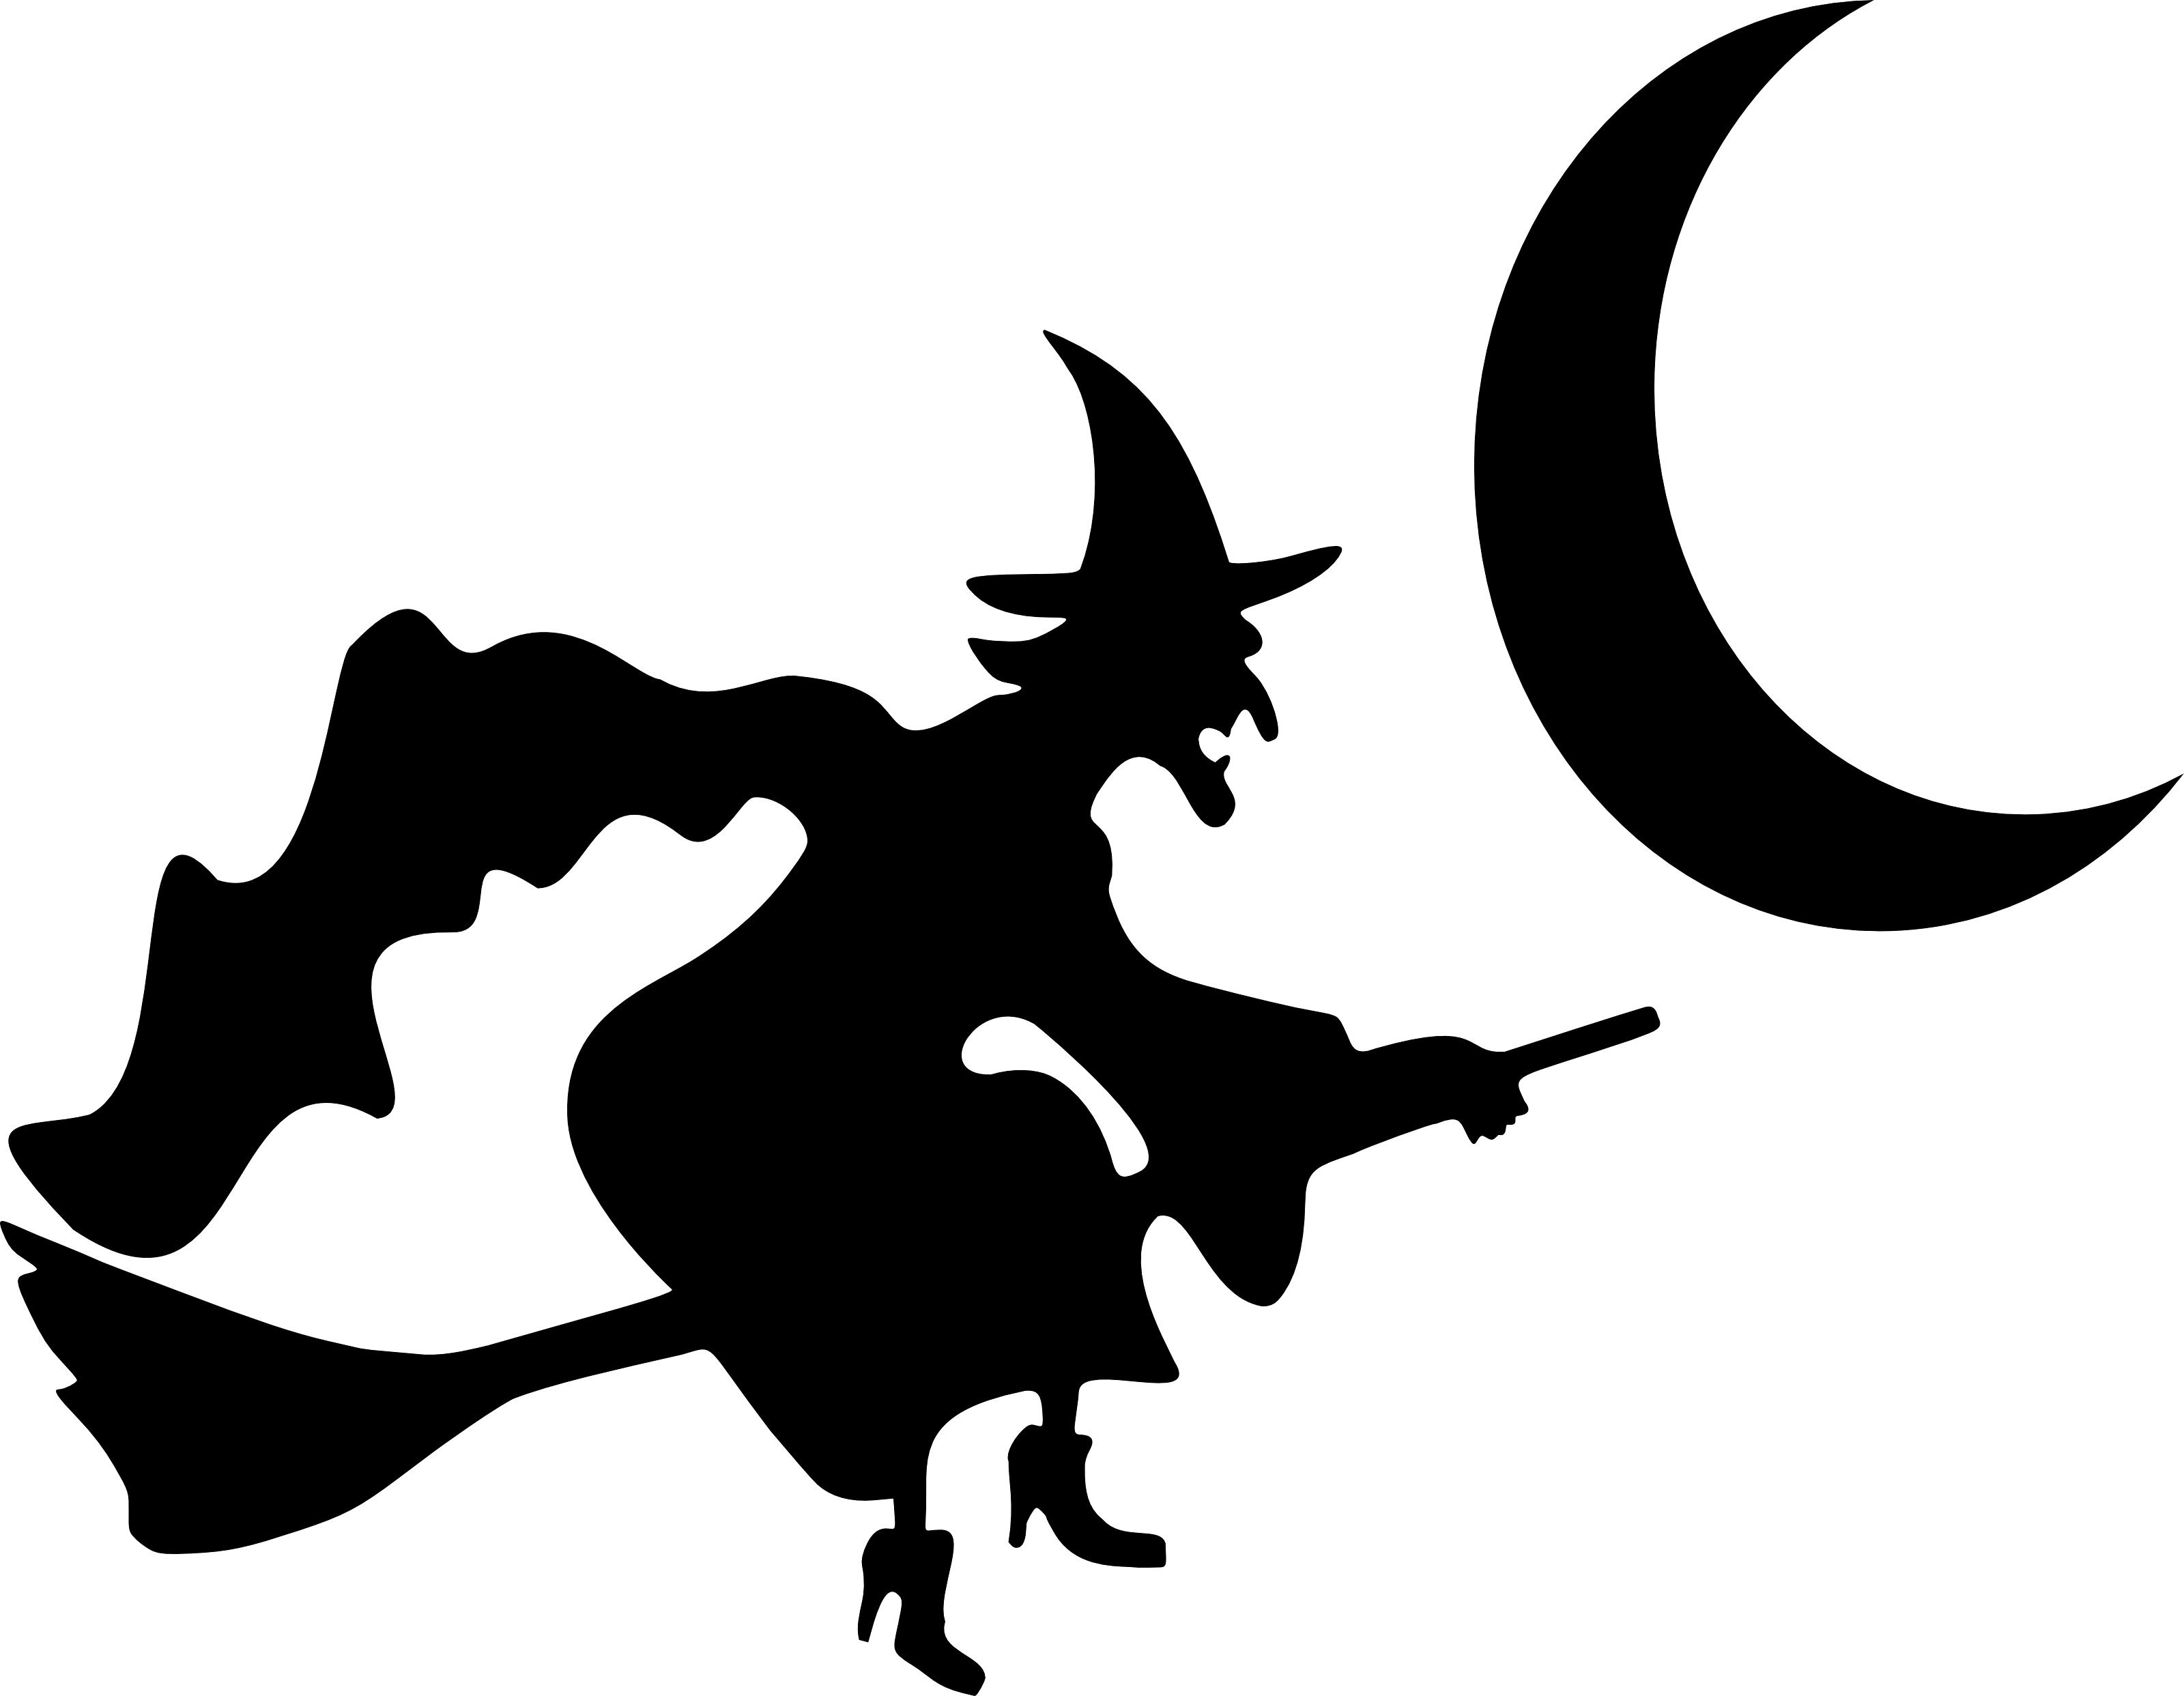 furniture stunning witch flying crescent moon silhouette halloween rh pinterest com halloween vector patterns halloween vector images